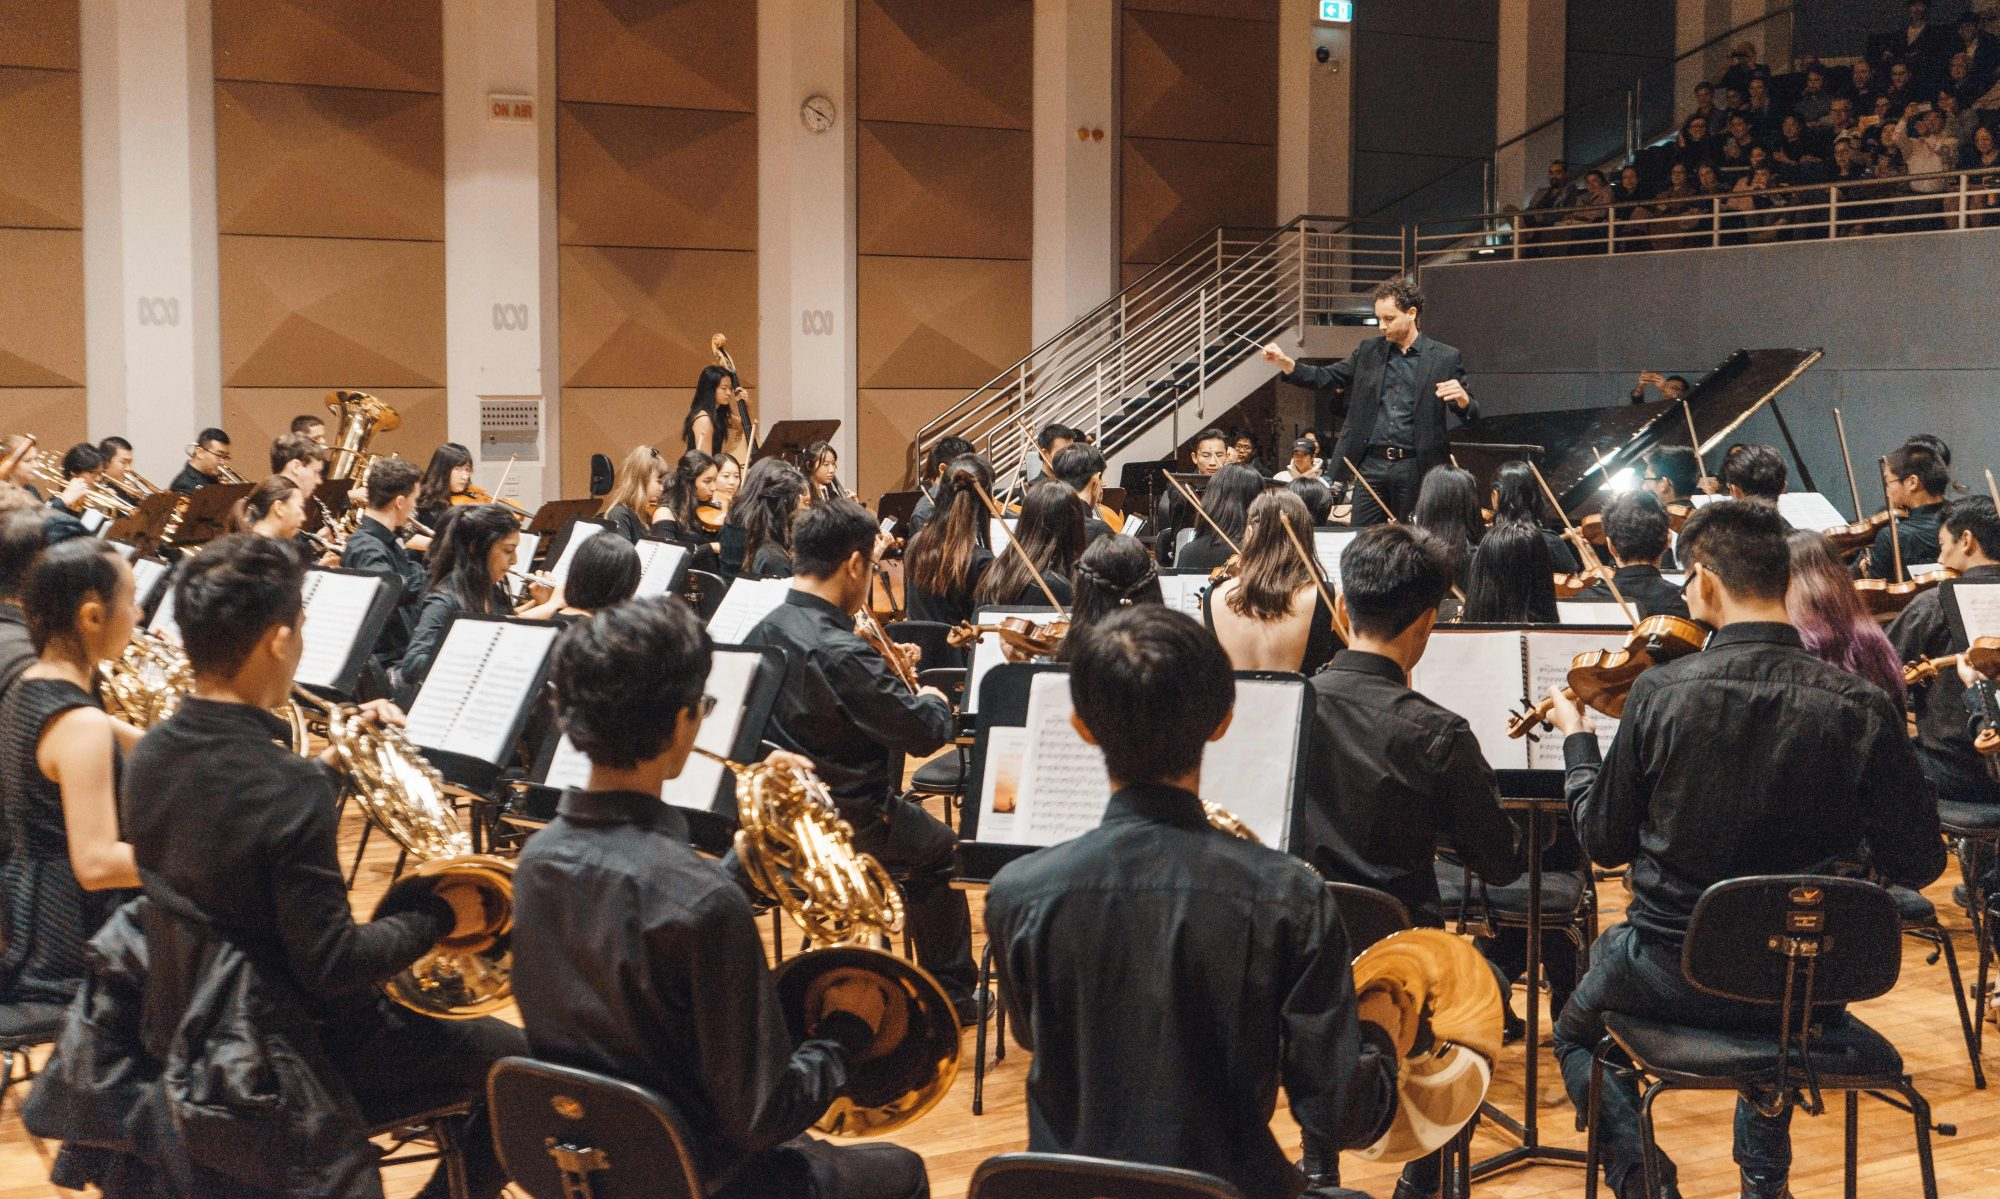 Melbourne University Biomedicine Students' Orchestra